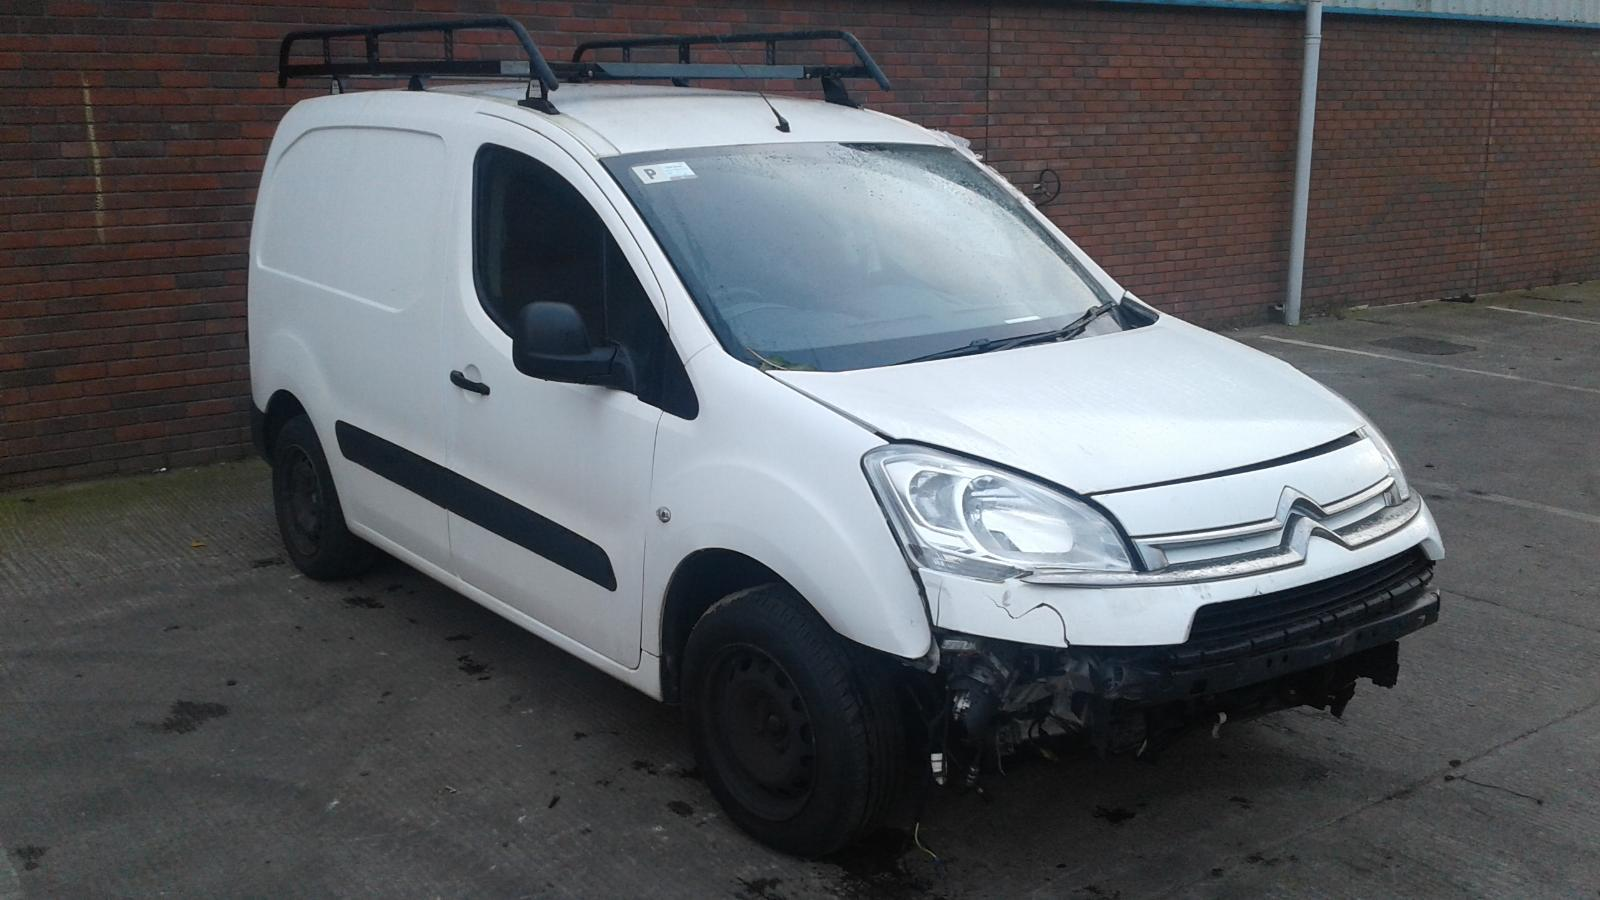 2015 Citroen Berlingo Image